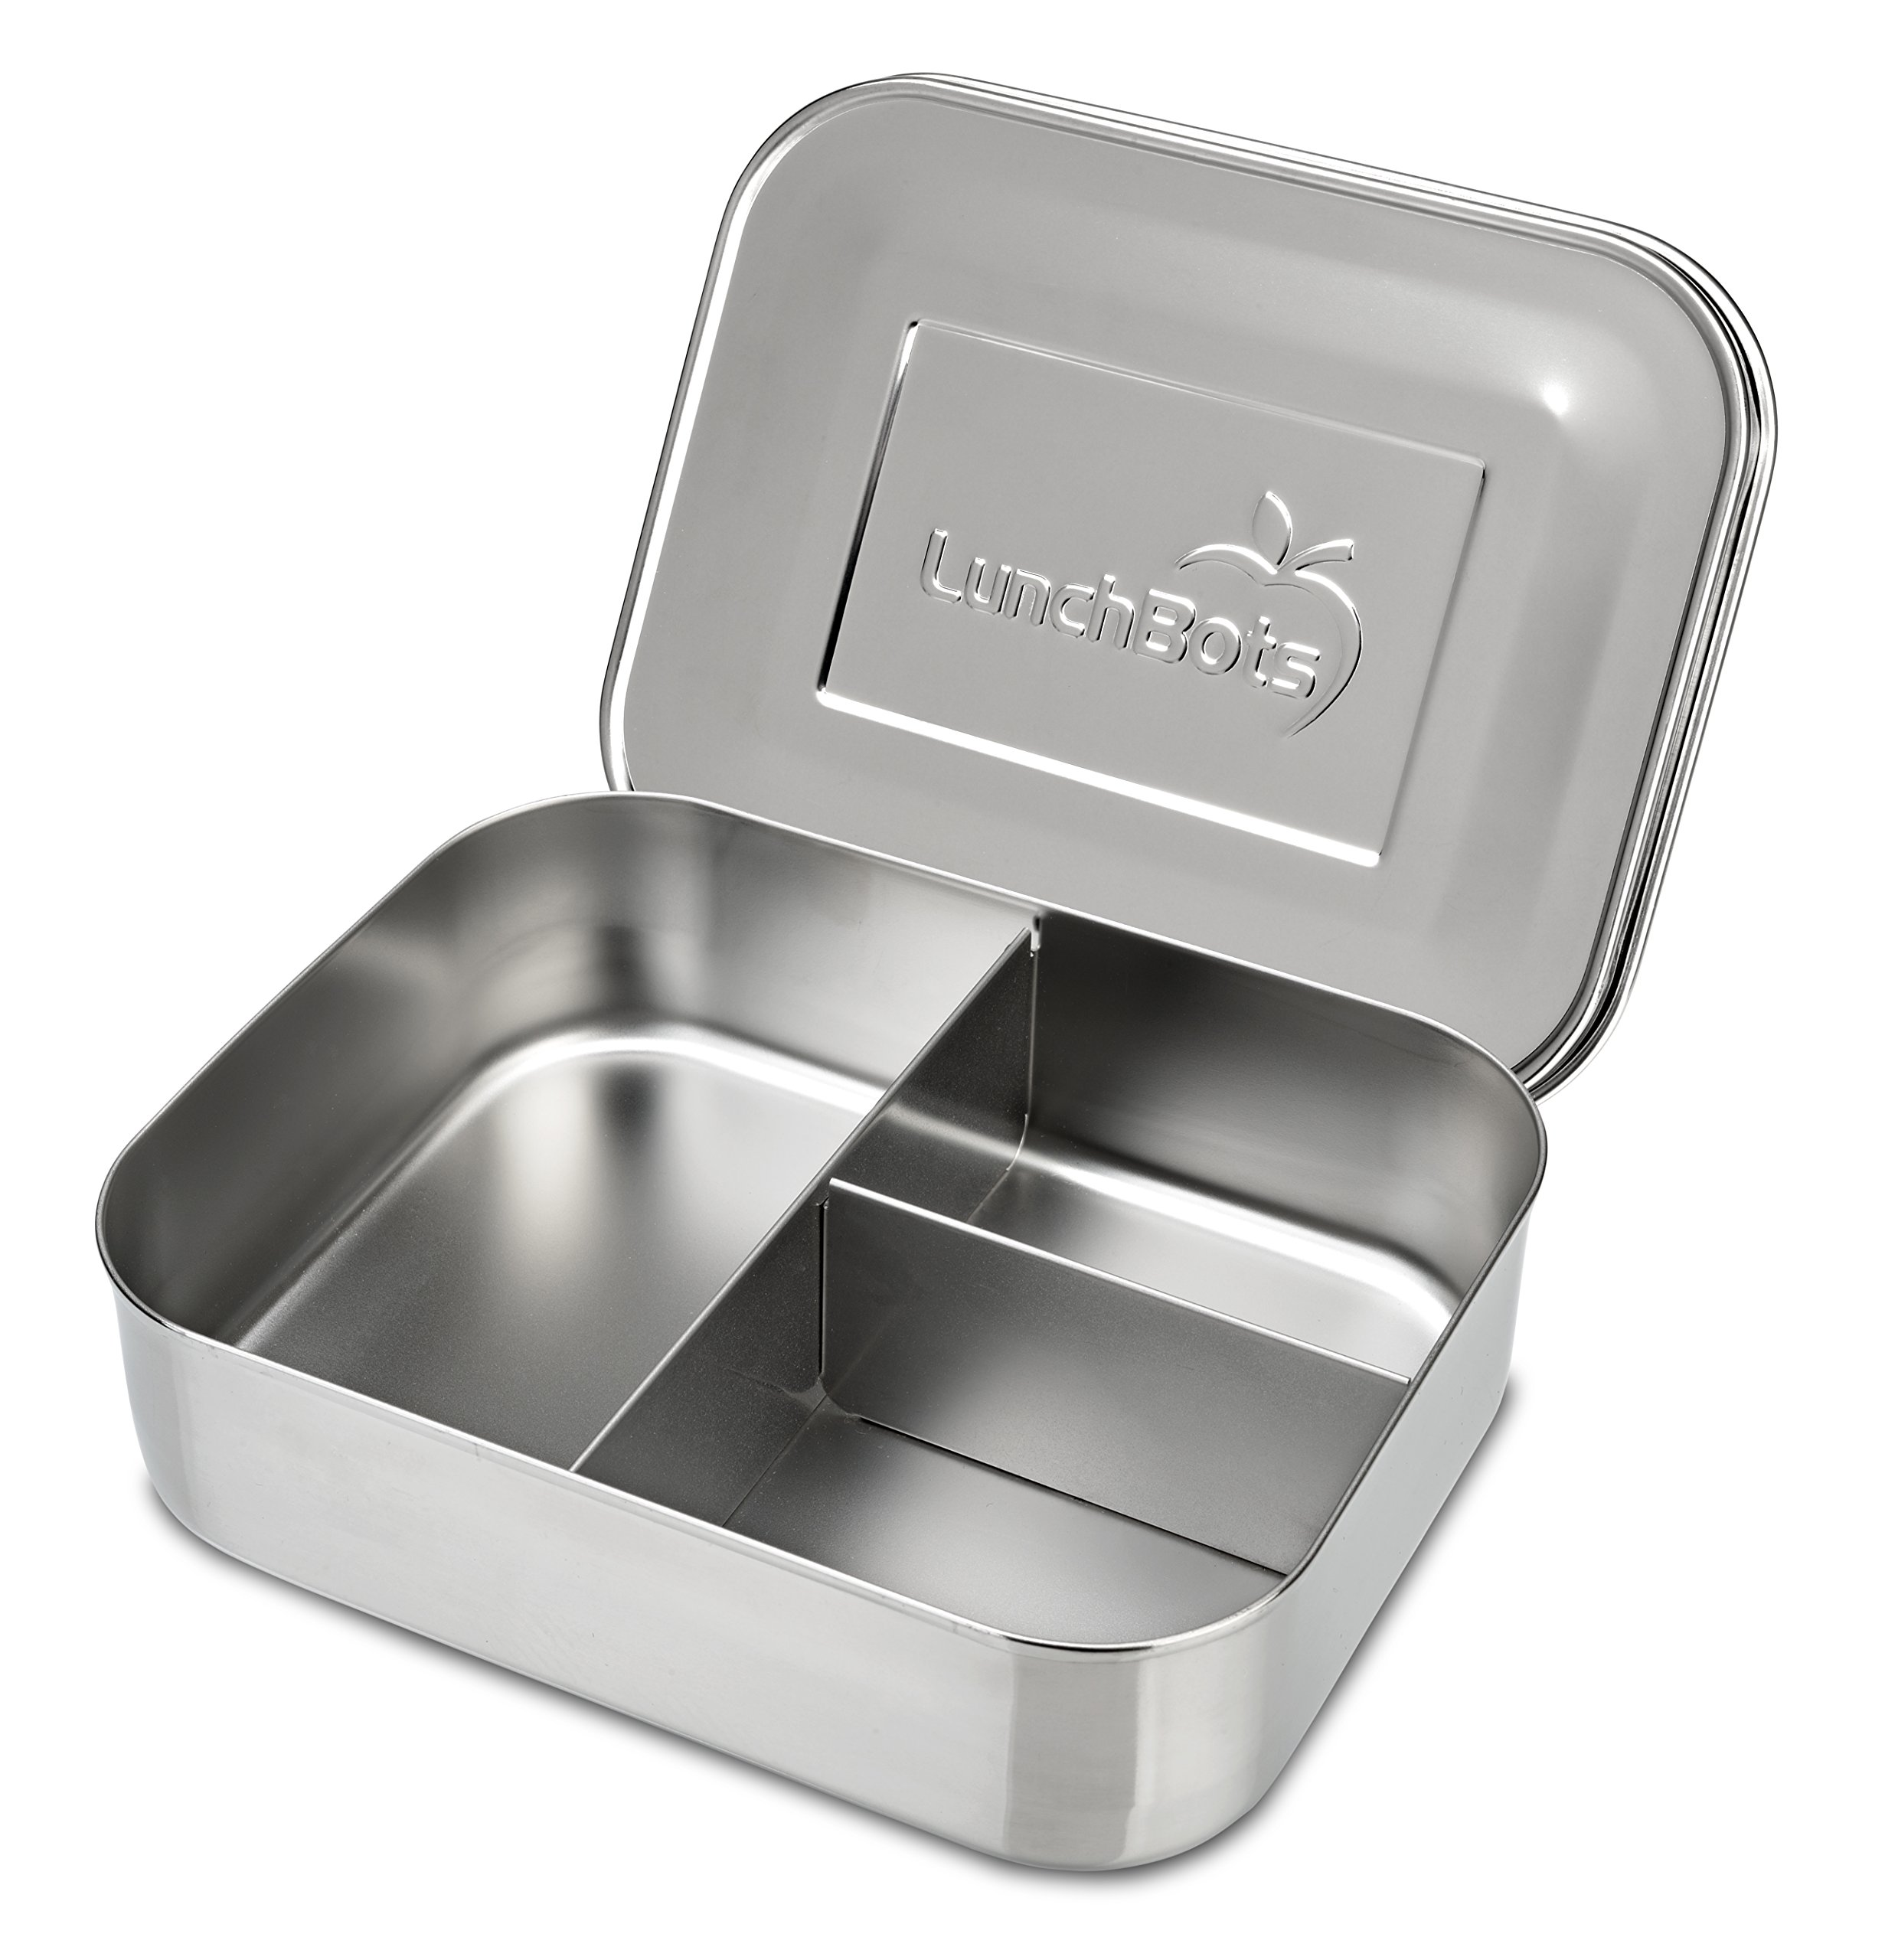 LunchBots Medium Trio II Snack Container - Divided Stainless Steel Food Container - Three Sections for Snacks On the Go - Eco-Friendly, Dishwasher Safe, BPA-Free - Stainless Lid - All Stainless by LunchBots